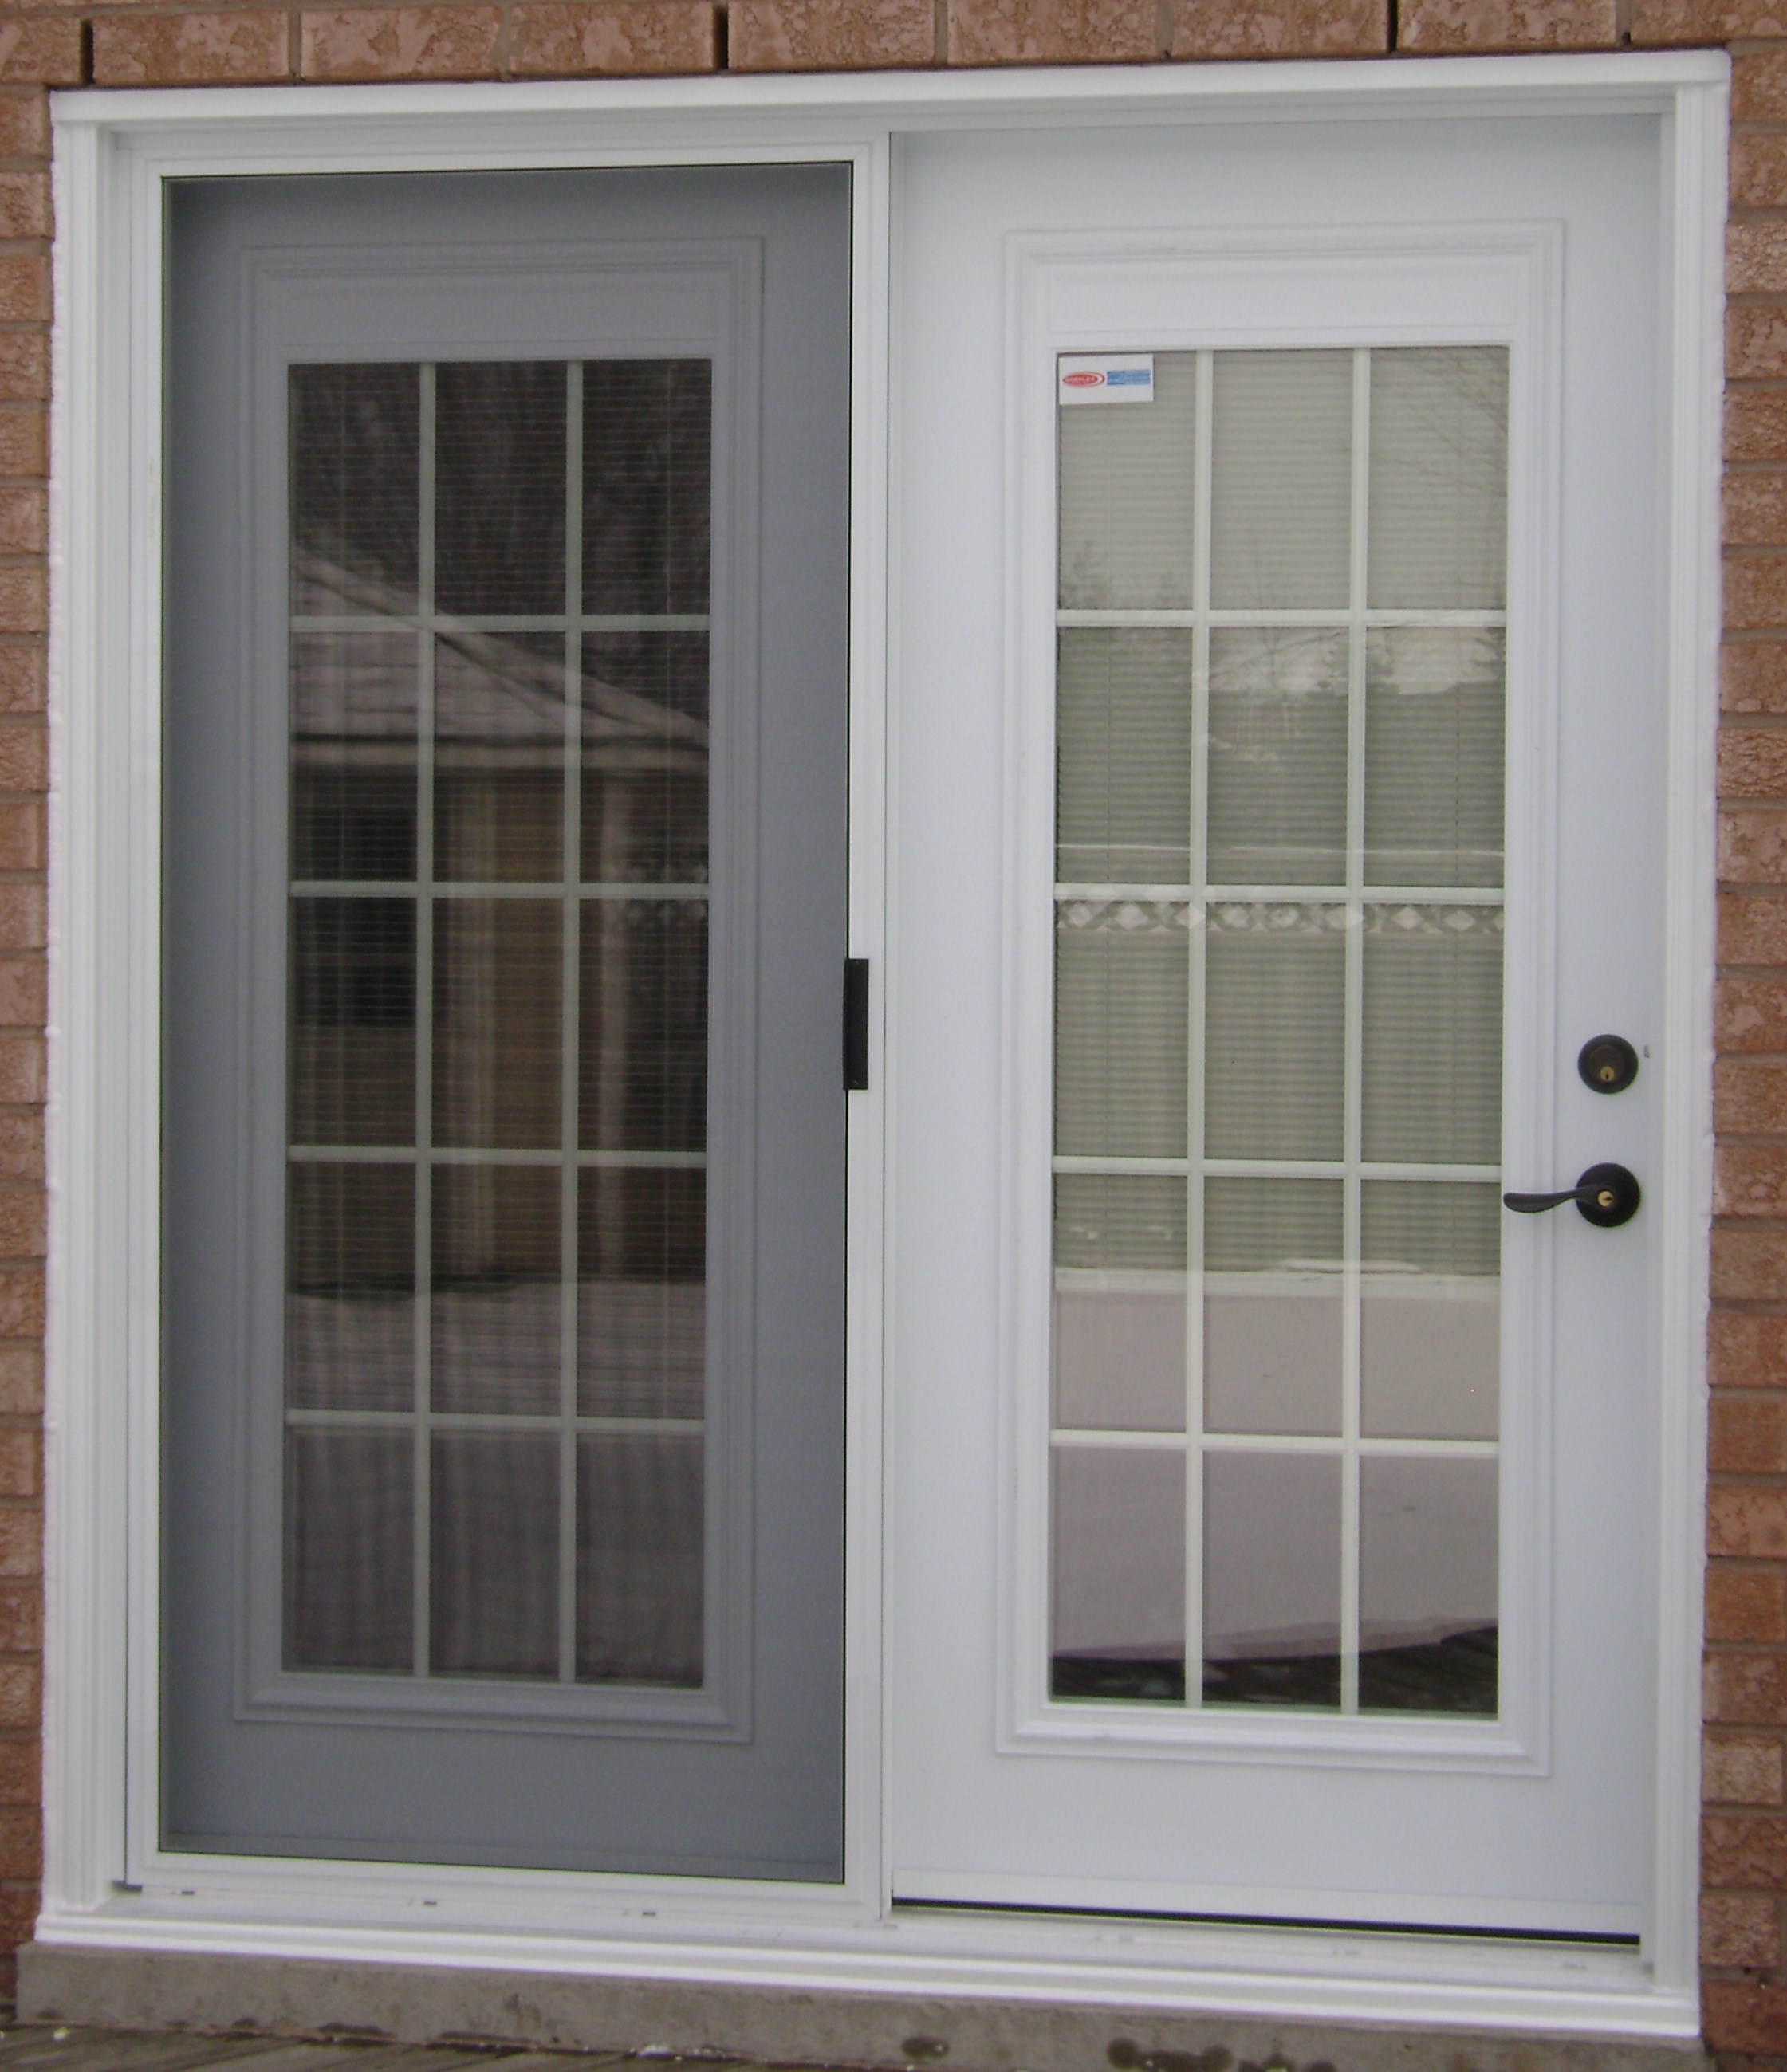 French doors garden doors mississauga french garden for Widows and doors